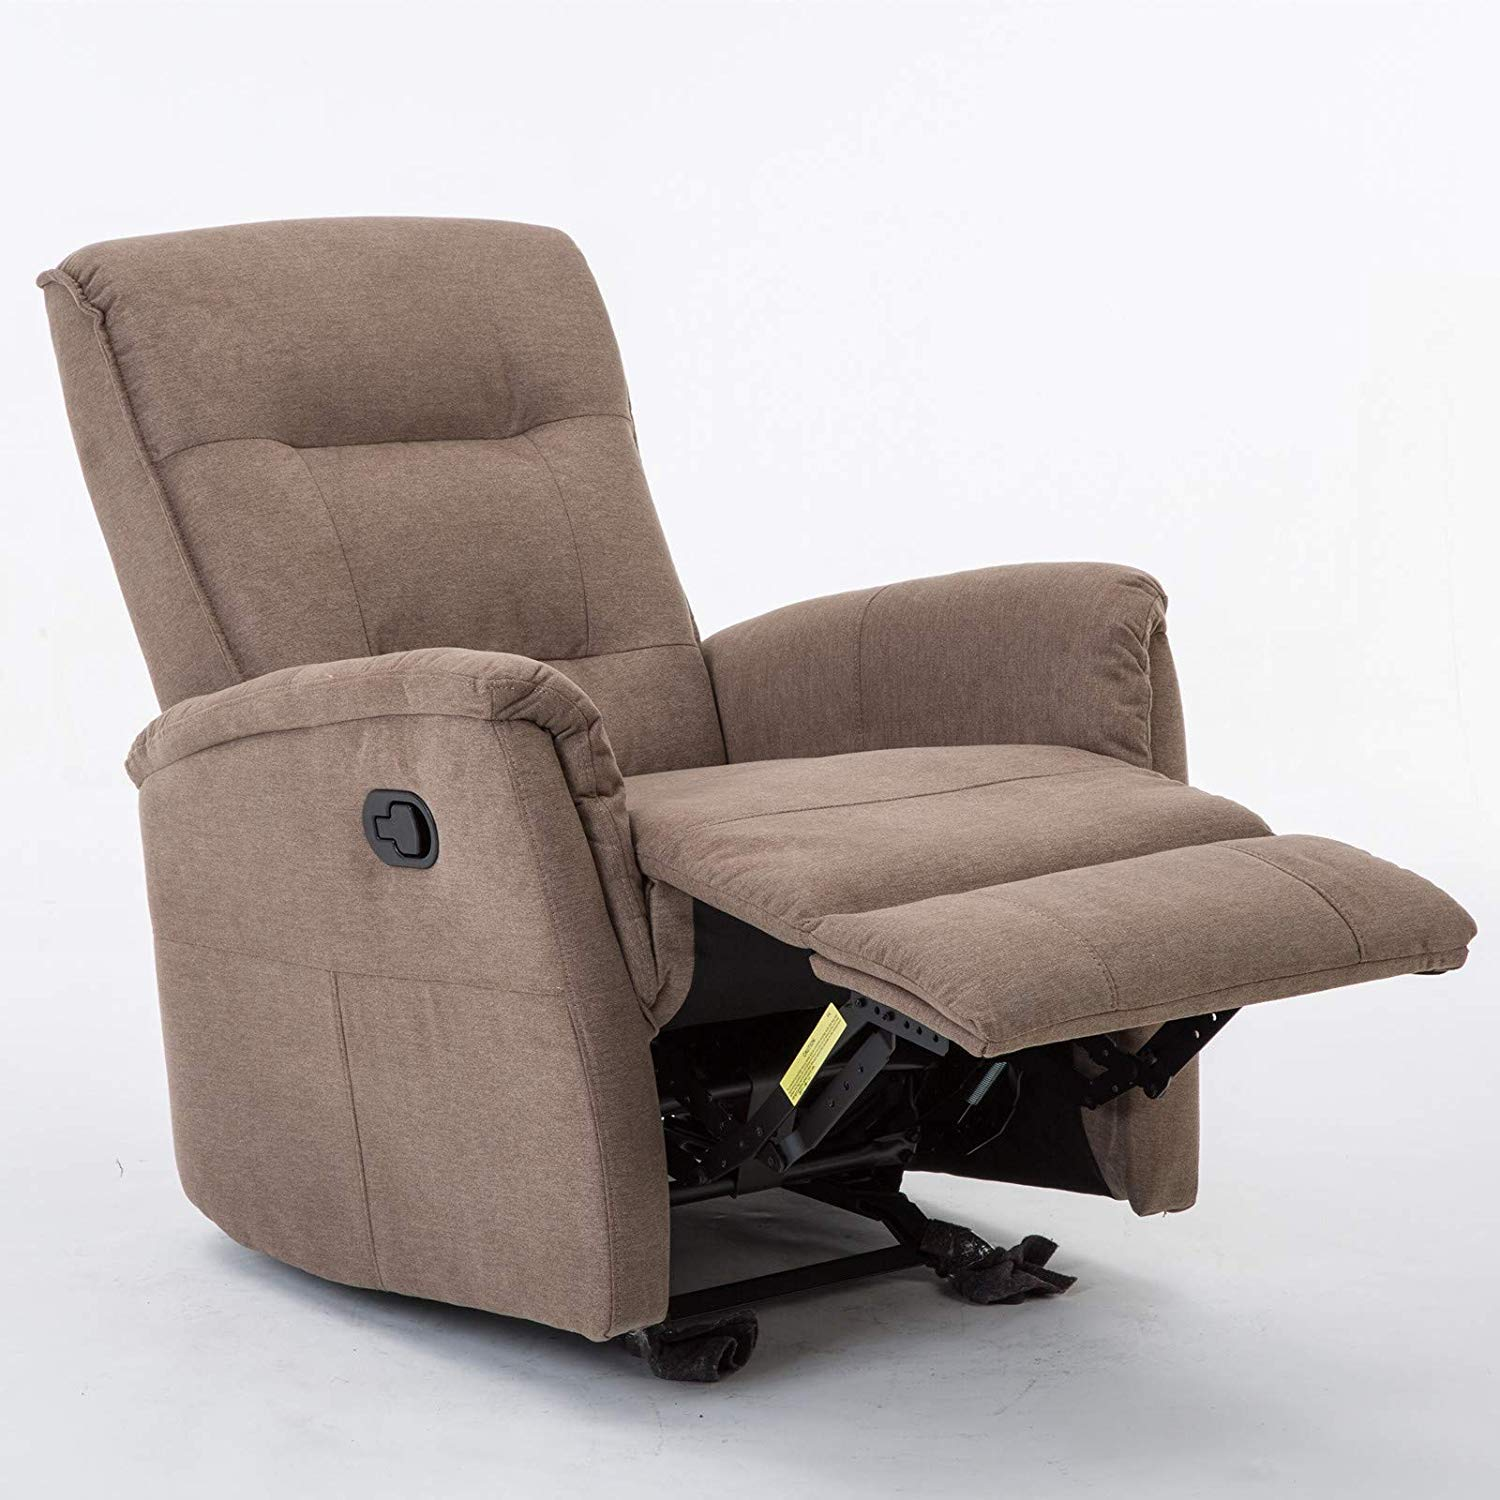 Best Recliners 2020.Best Rocker Recliner Review In 2019 Top Rated By The Home